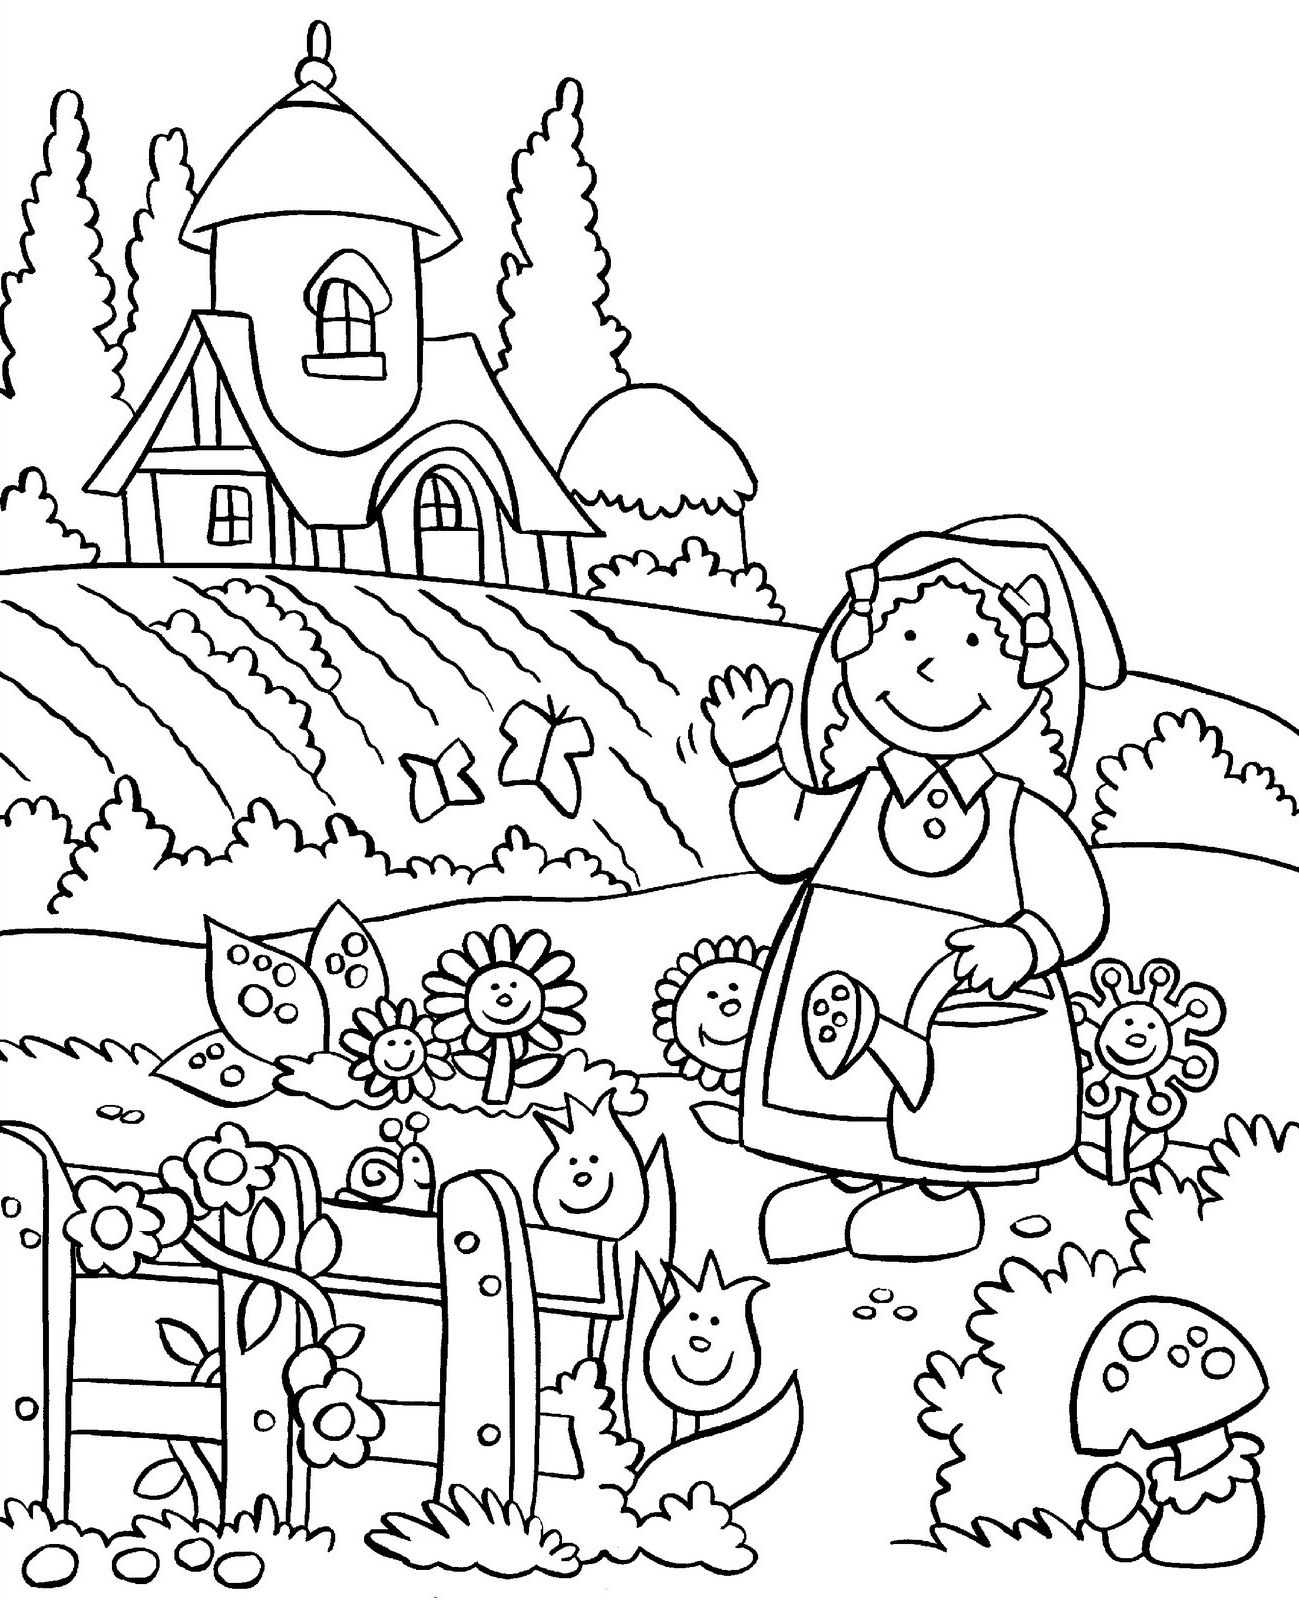 coloring pages of vegetable gardens - photo#20